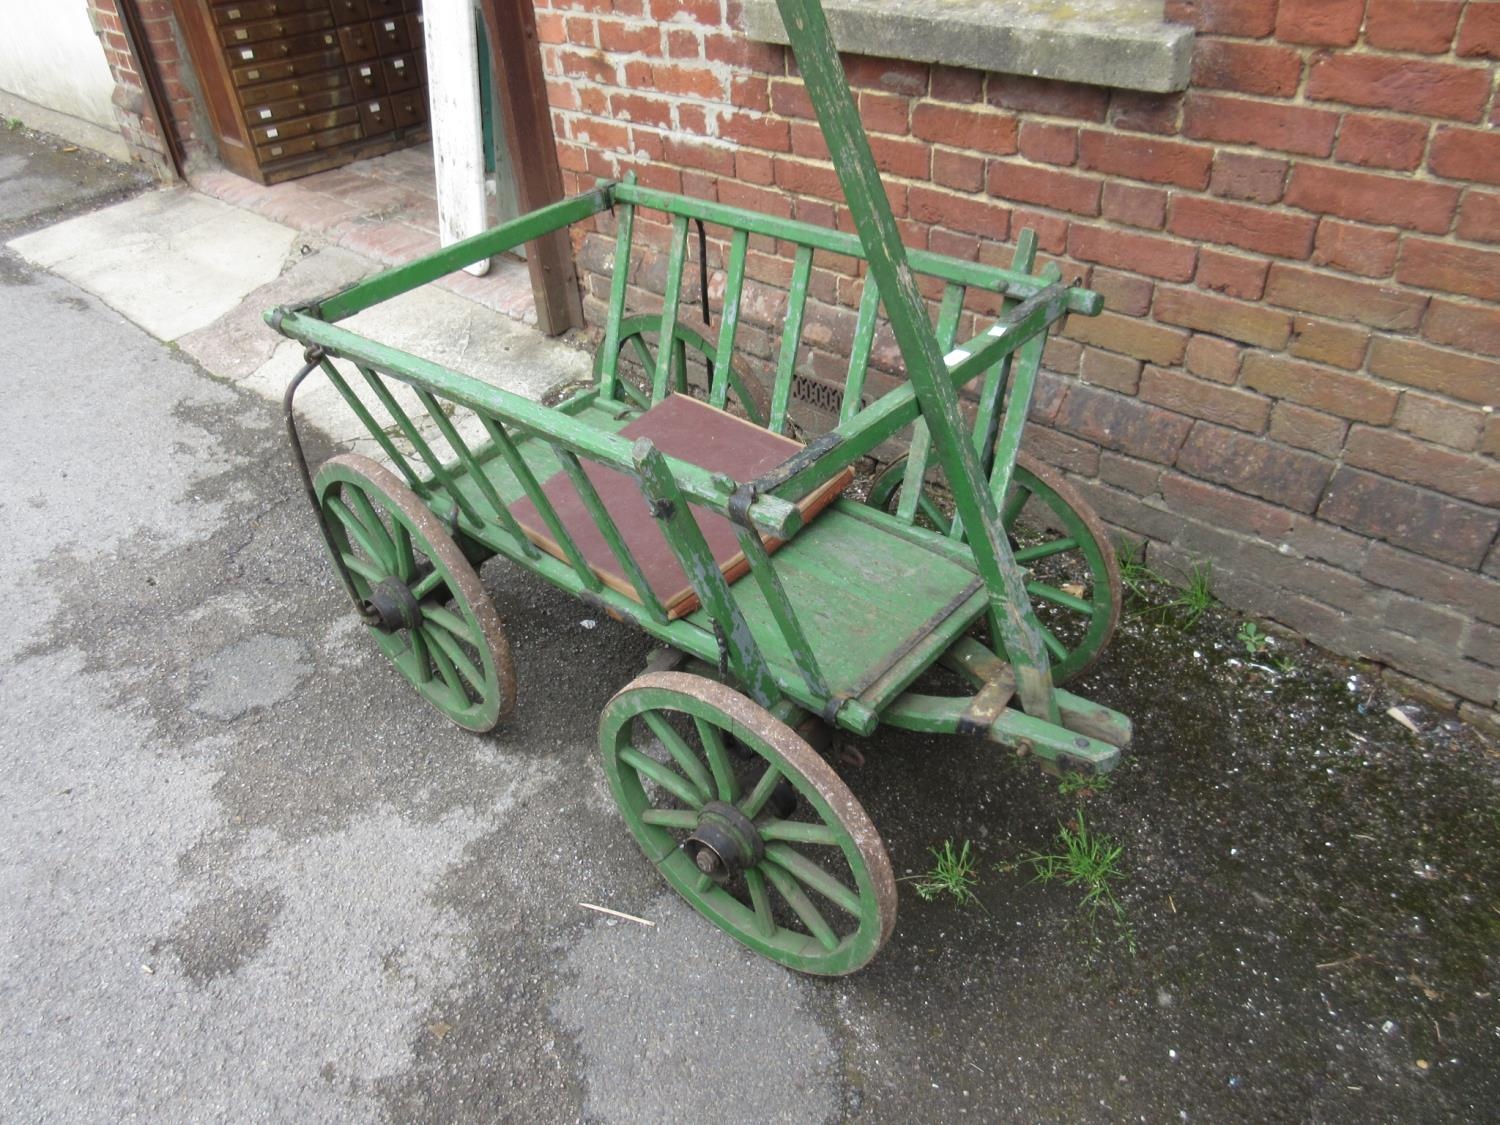 Green painted wooden four wheeled dog cart